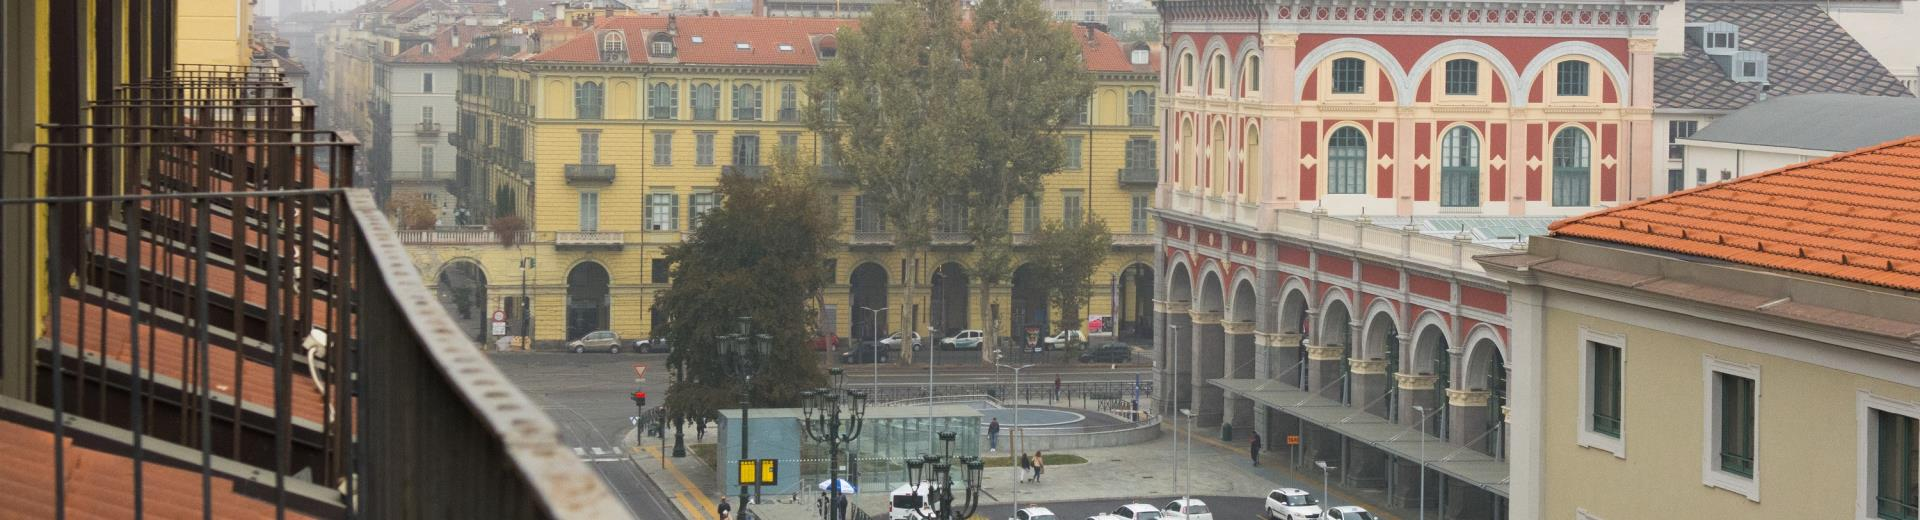 Porta Nuova and the parking